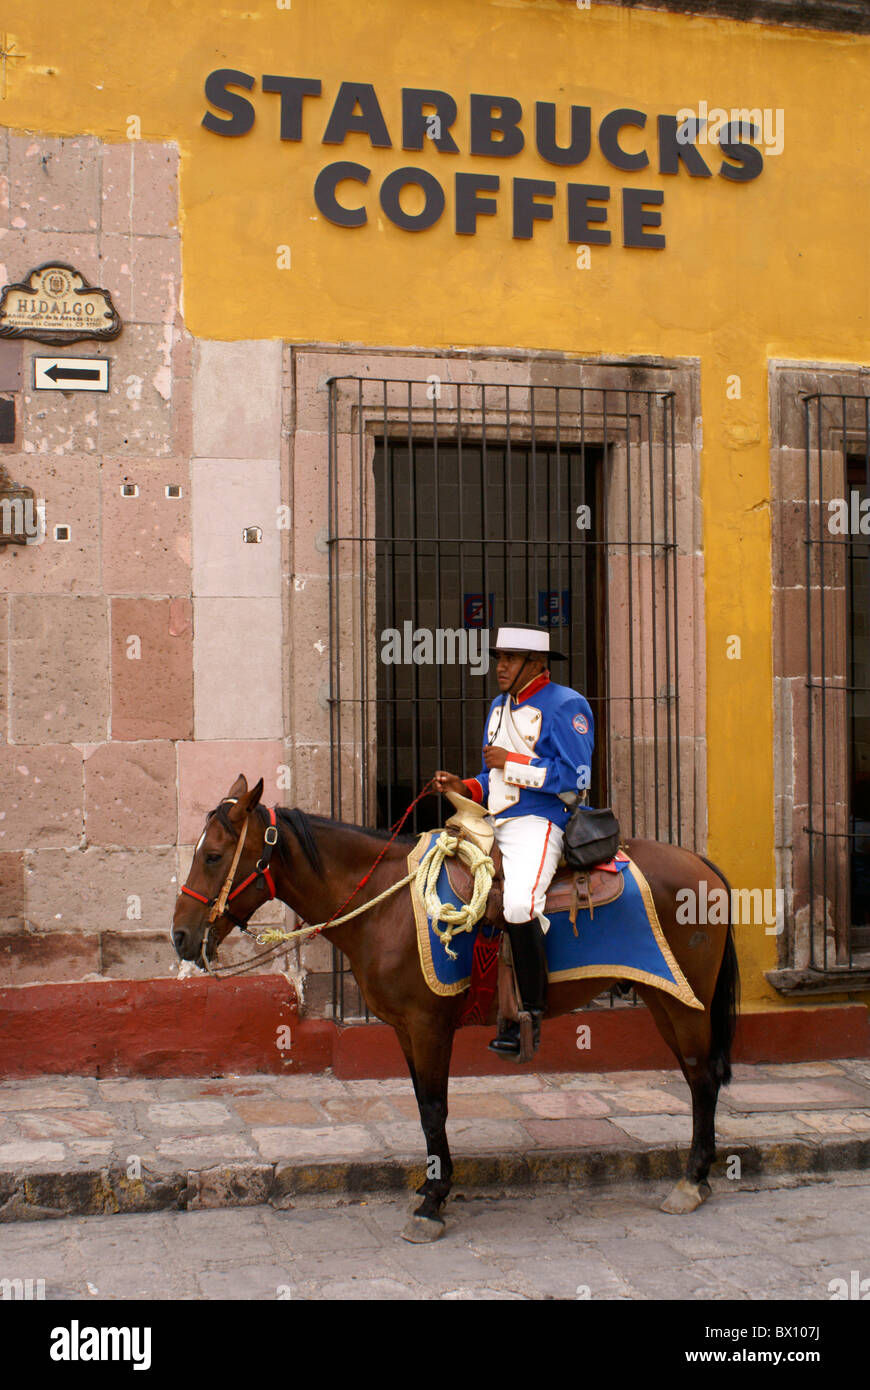 Spanish policeman in traditionlal costume on horseback outside Starbucks Coffee shop in San Miguel de Allende, gentrification,americanization - Stock Image